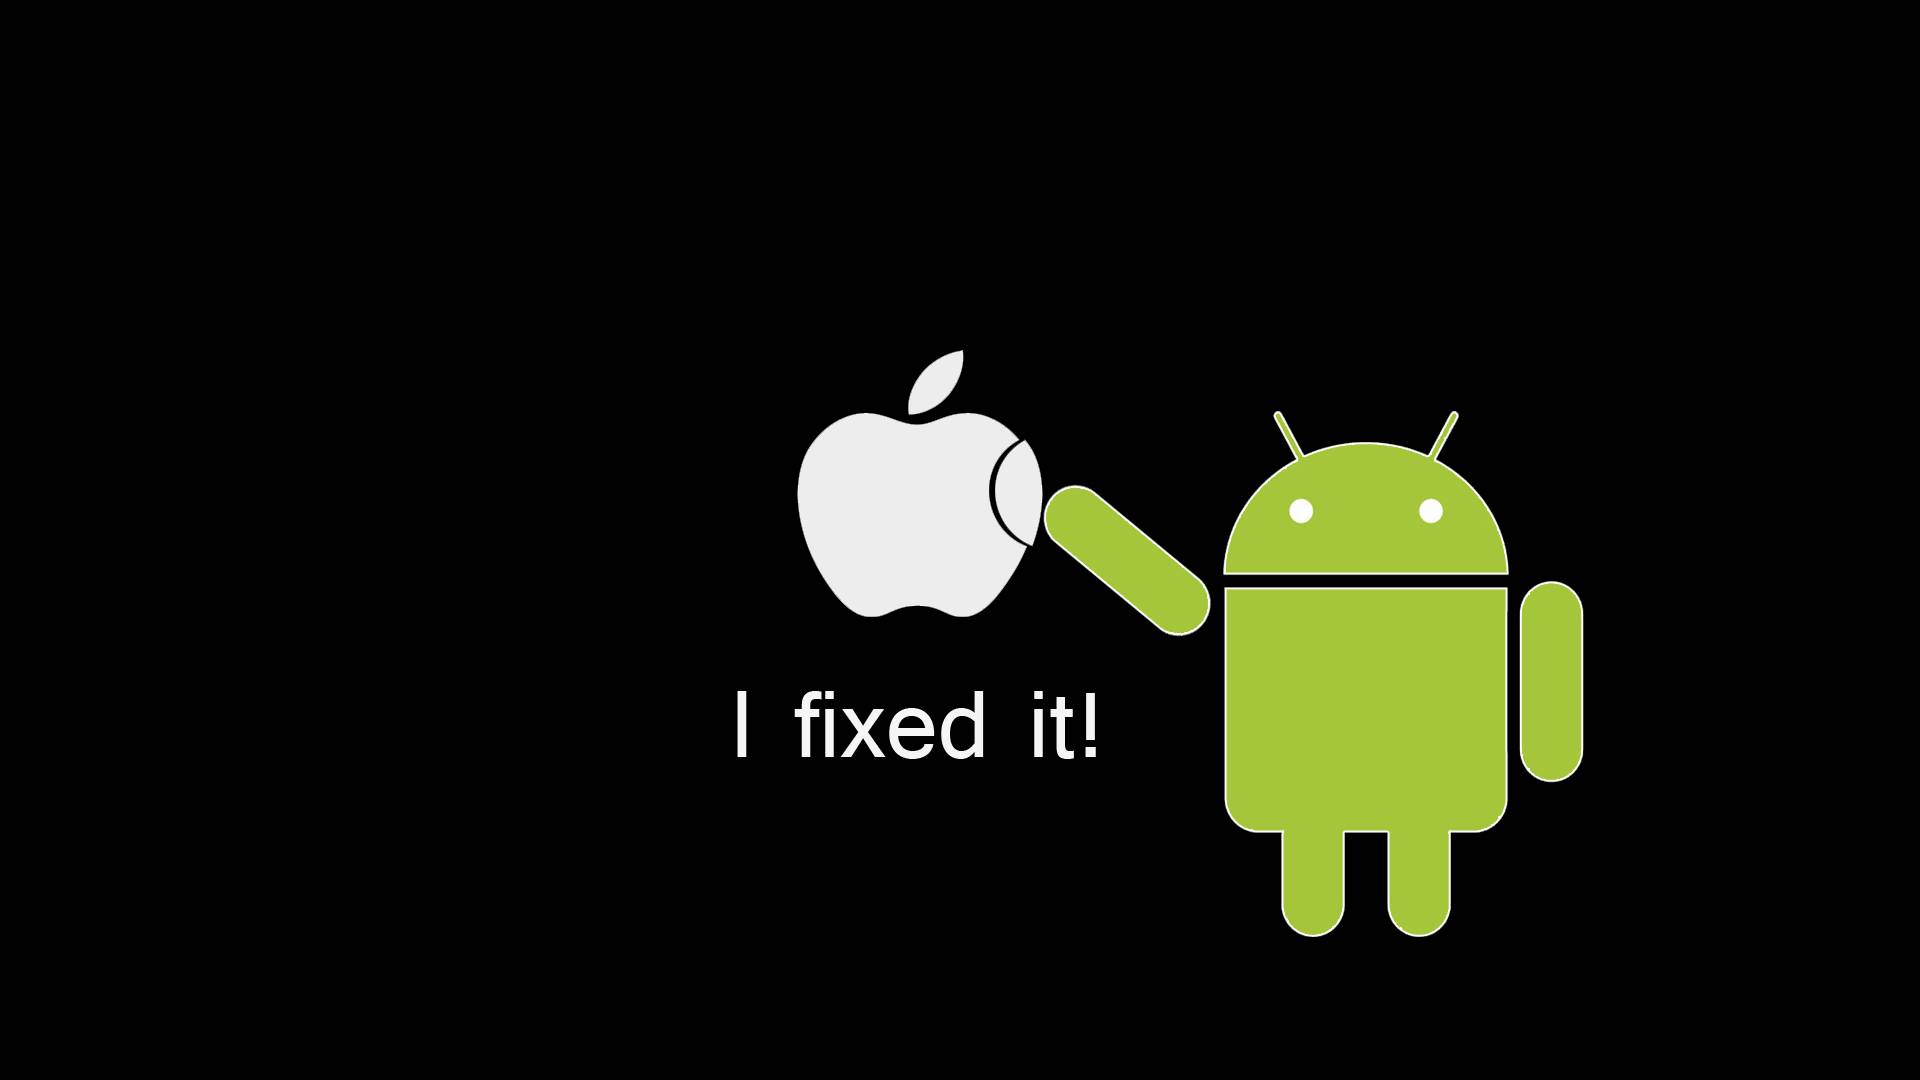 Android cannot do that to Apple   Apple Wallpaper 1920x1080